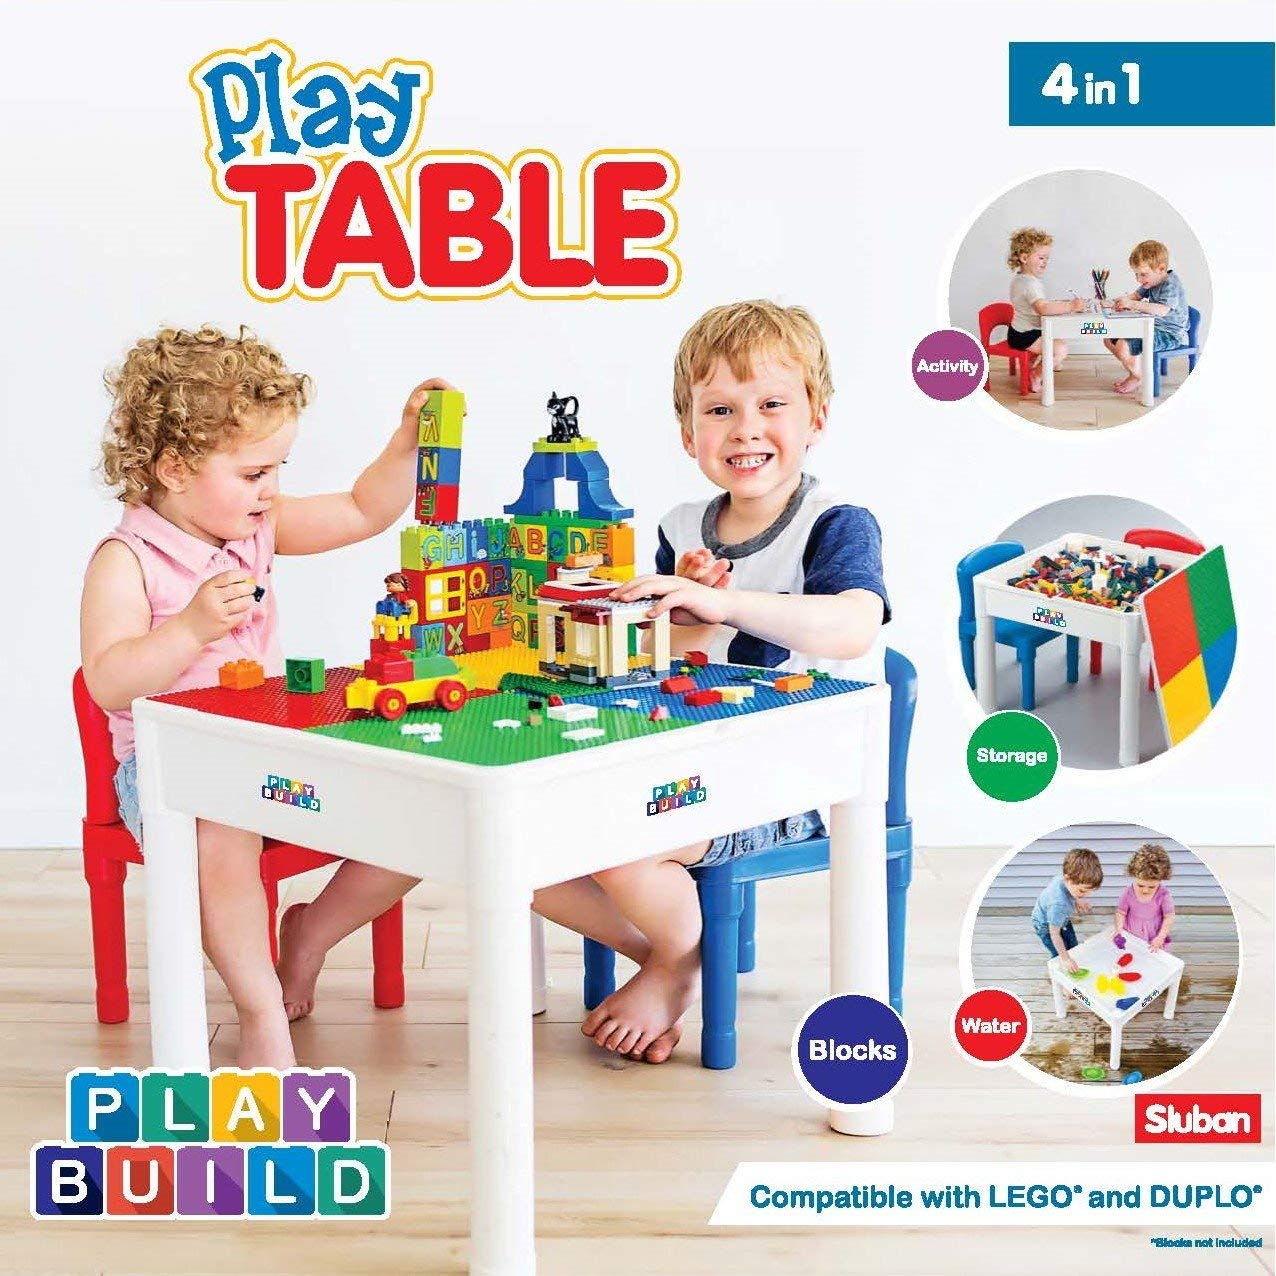 Lego Duplo Table Kids 4 In 1 Play Build Table Set For Indoor Activity Outdoor Water Play Toy Storage Building Block Fun Includes 2 Toddler